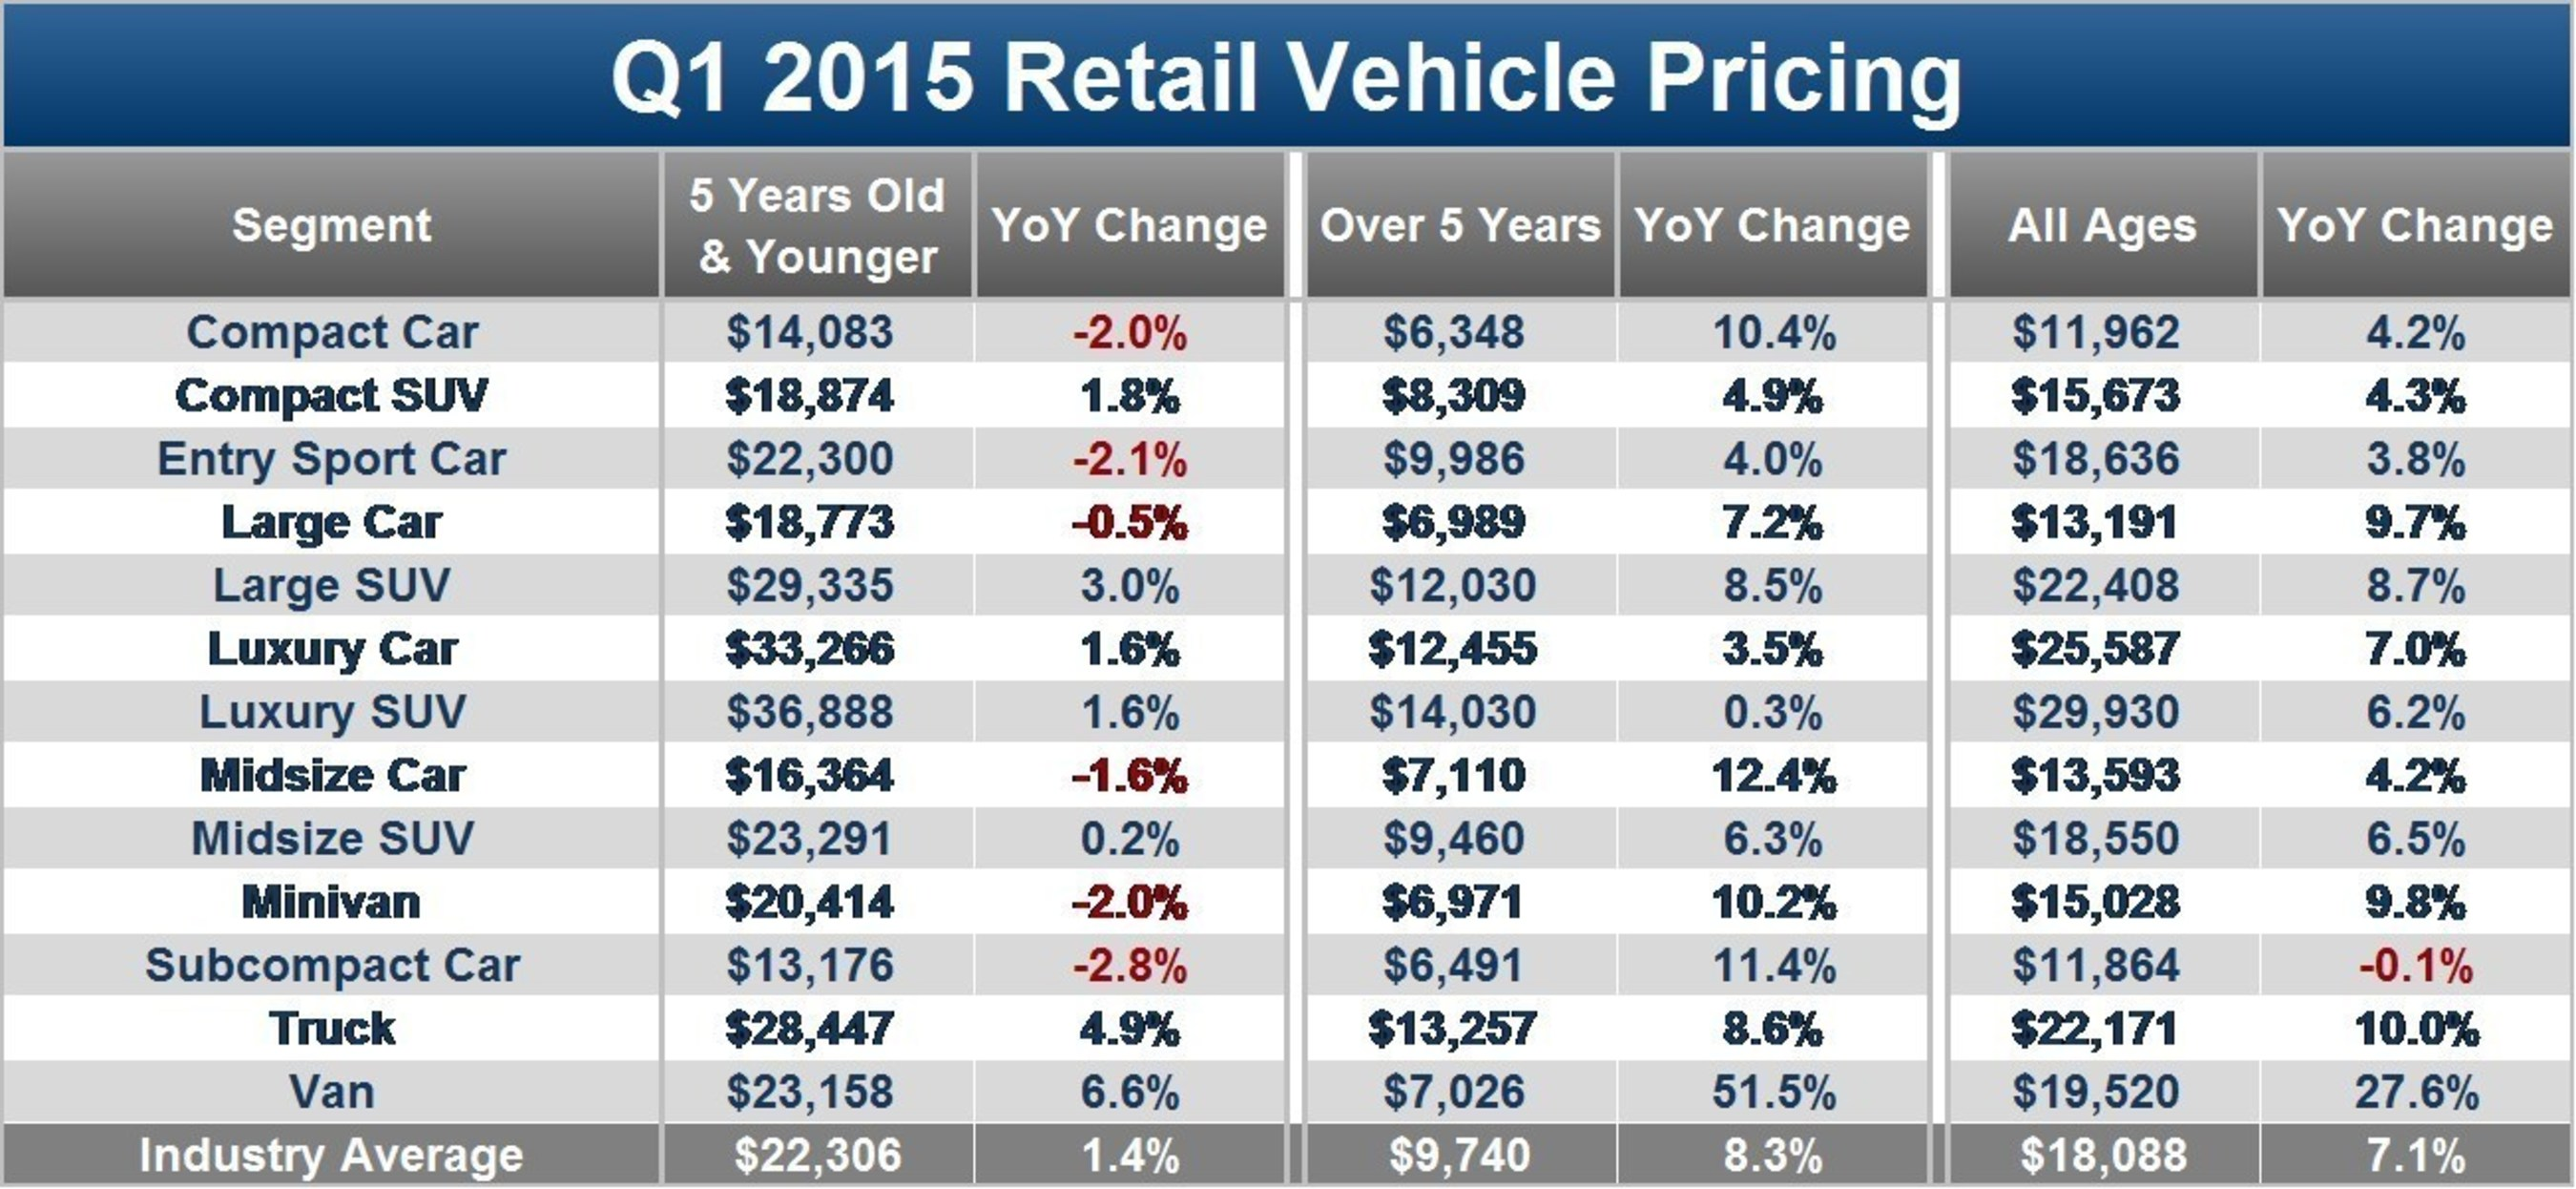 Edmunds.com found that prices of near-new compact, subcompact and midsize used cars decreased, even as overall used car prices increased 7.1 percent in the first quarter of 2015.